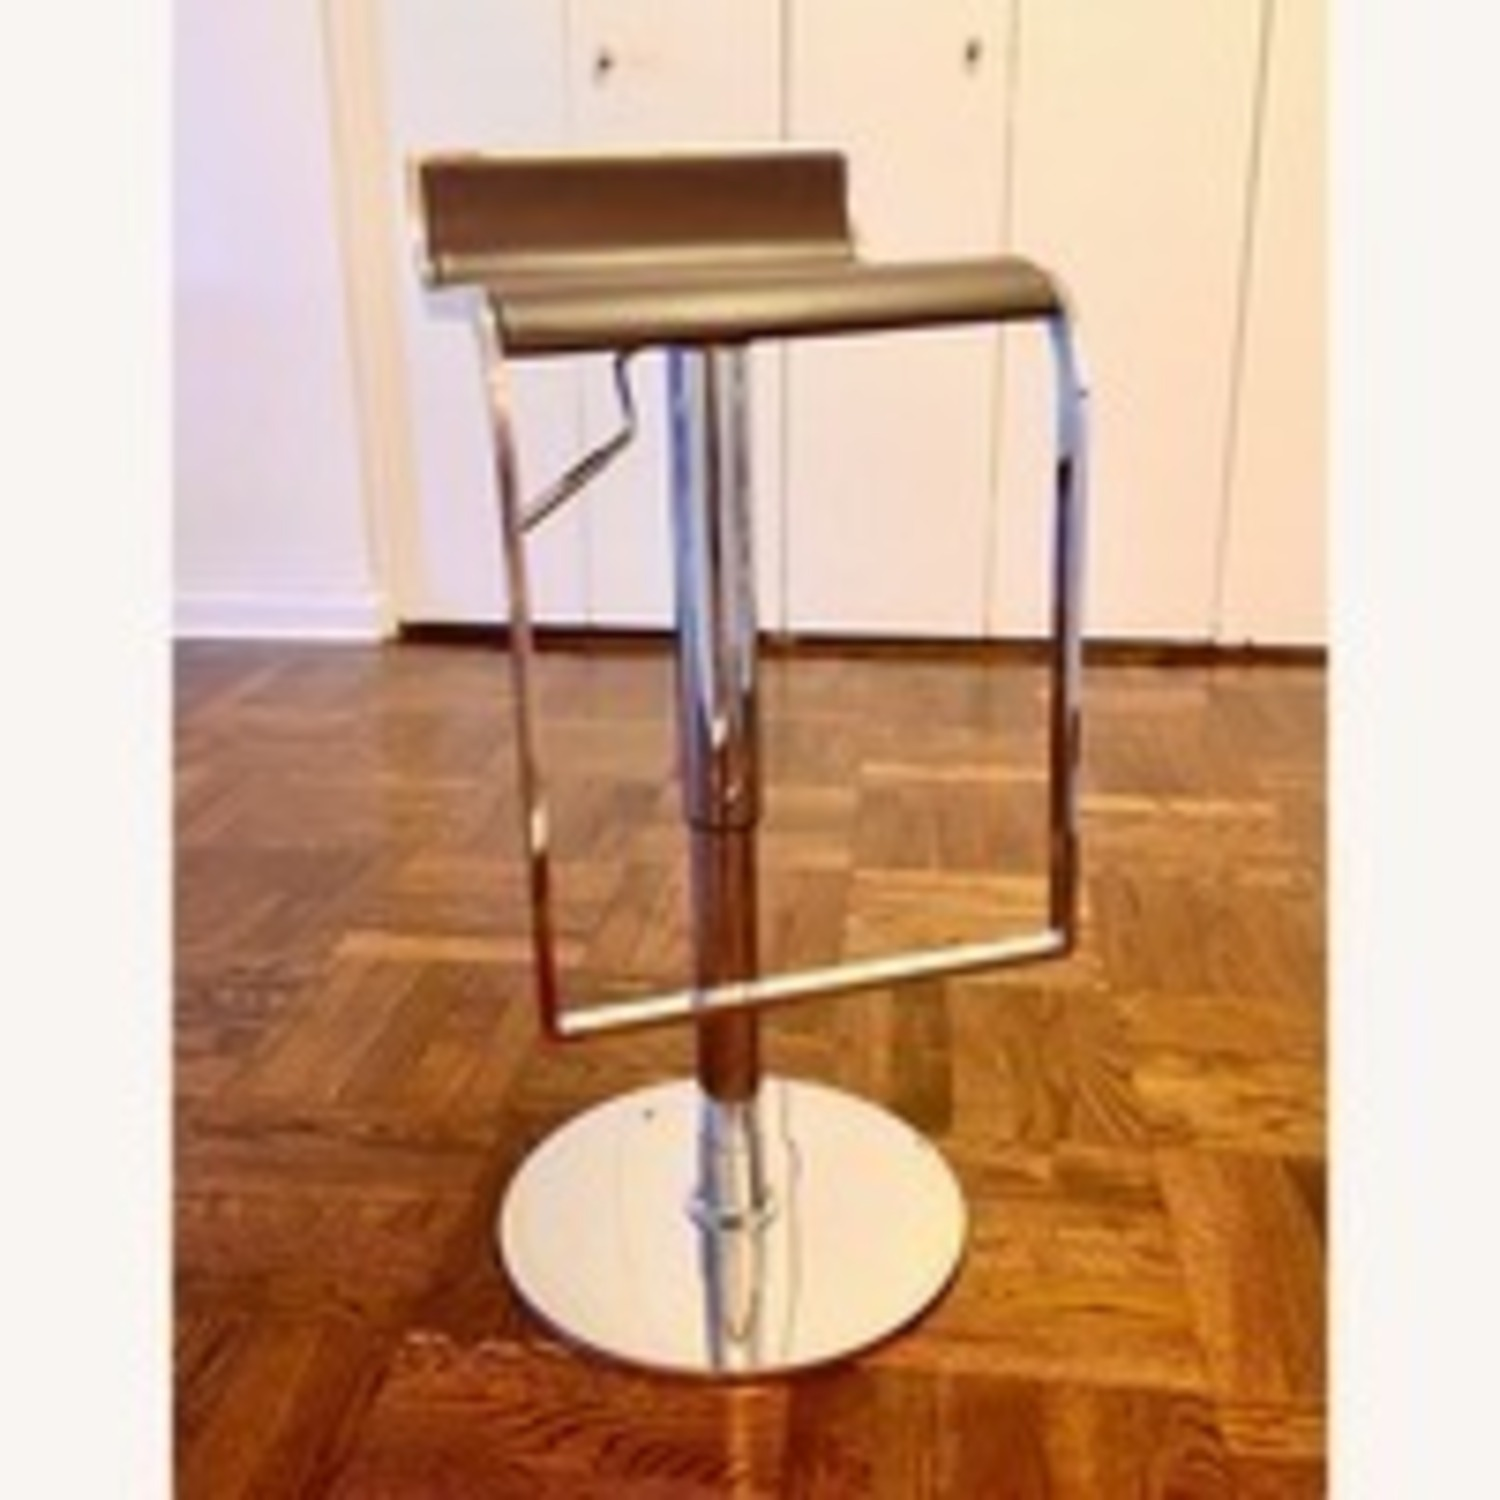 2 Design Stools with Dark Brown Leather Seat - image-1